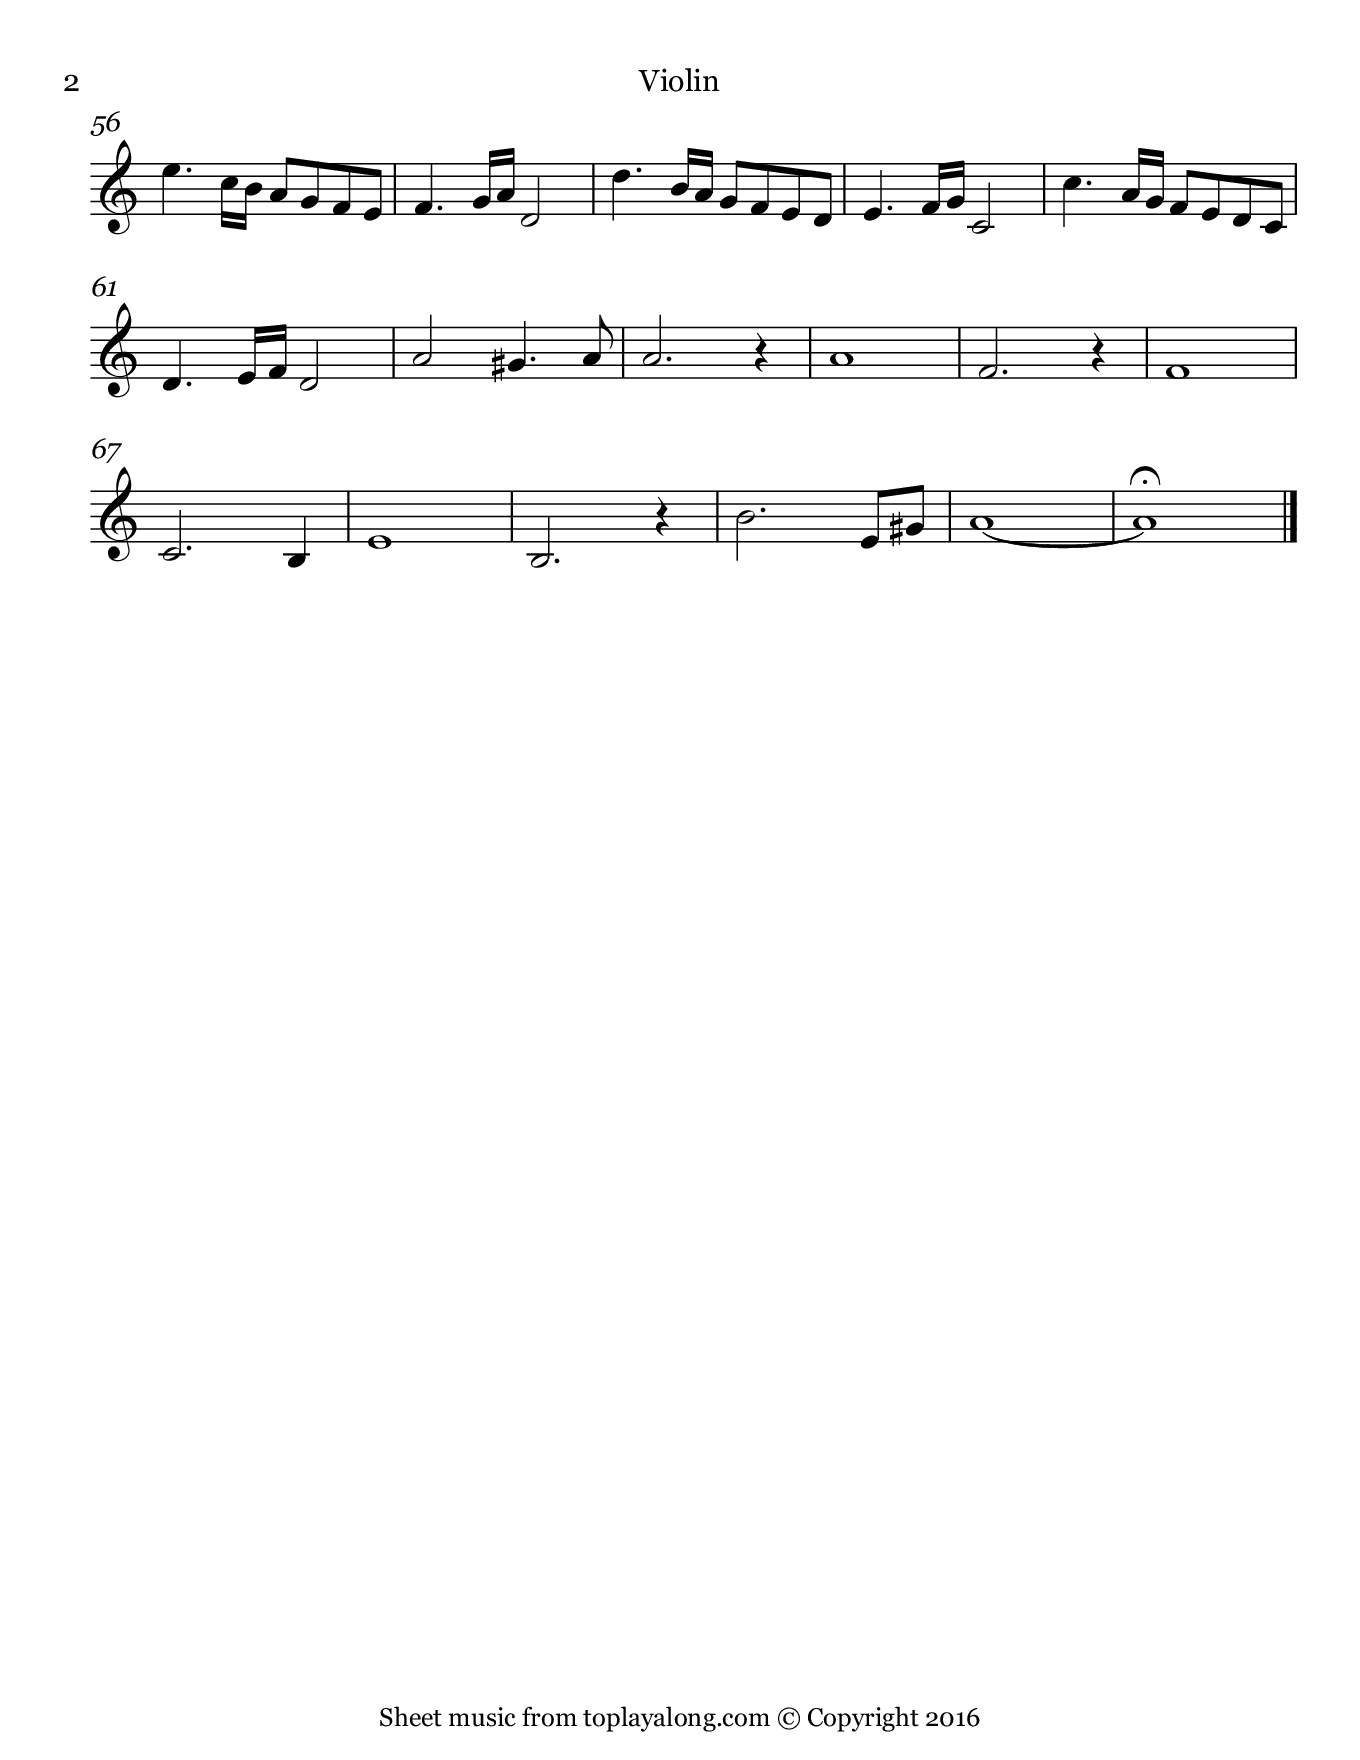 Ave Maria by Vavilov. Sheet music for Violin, page 2.